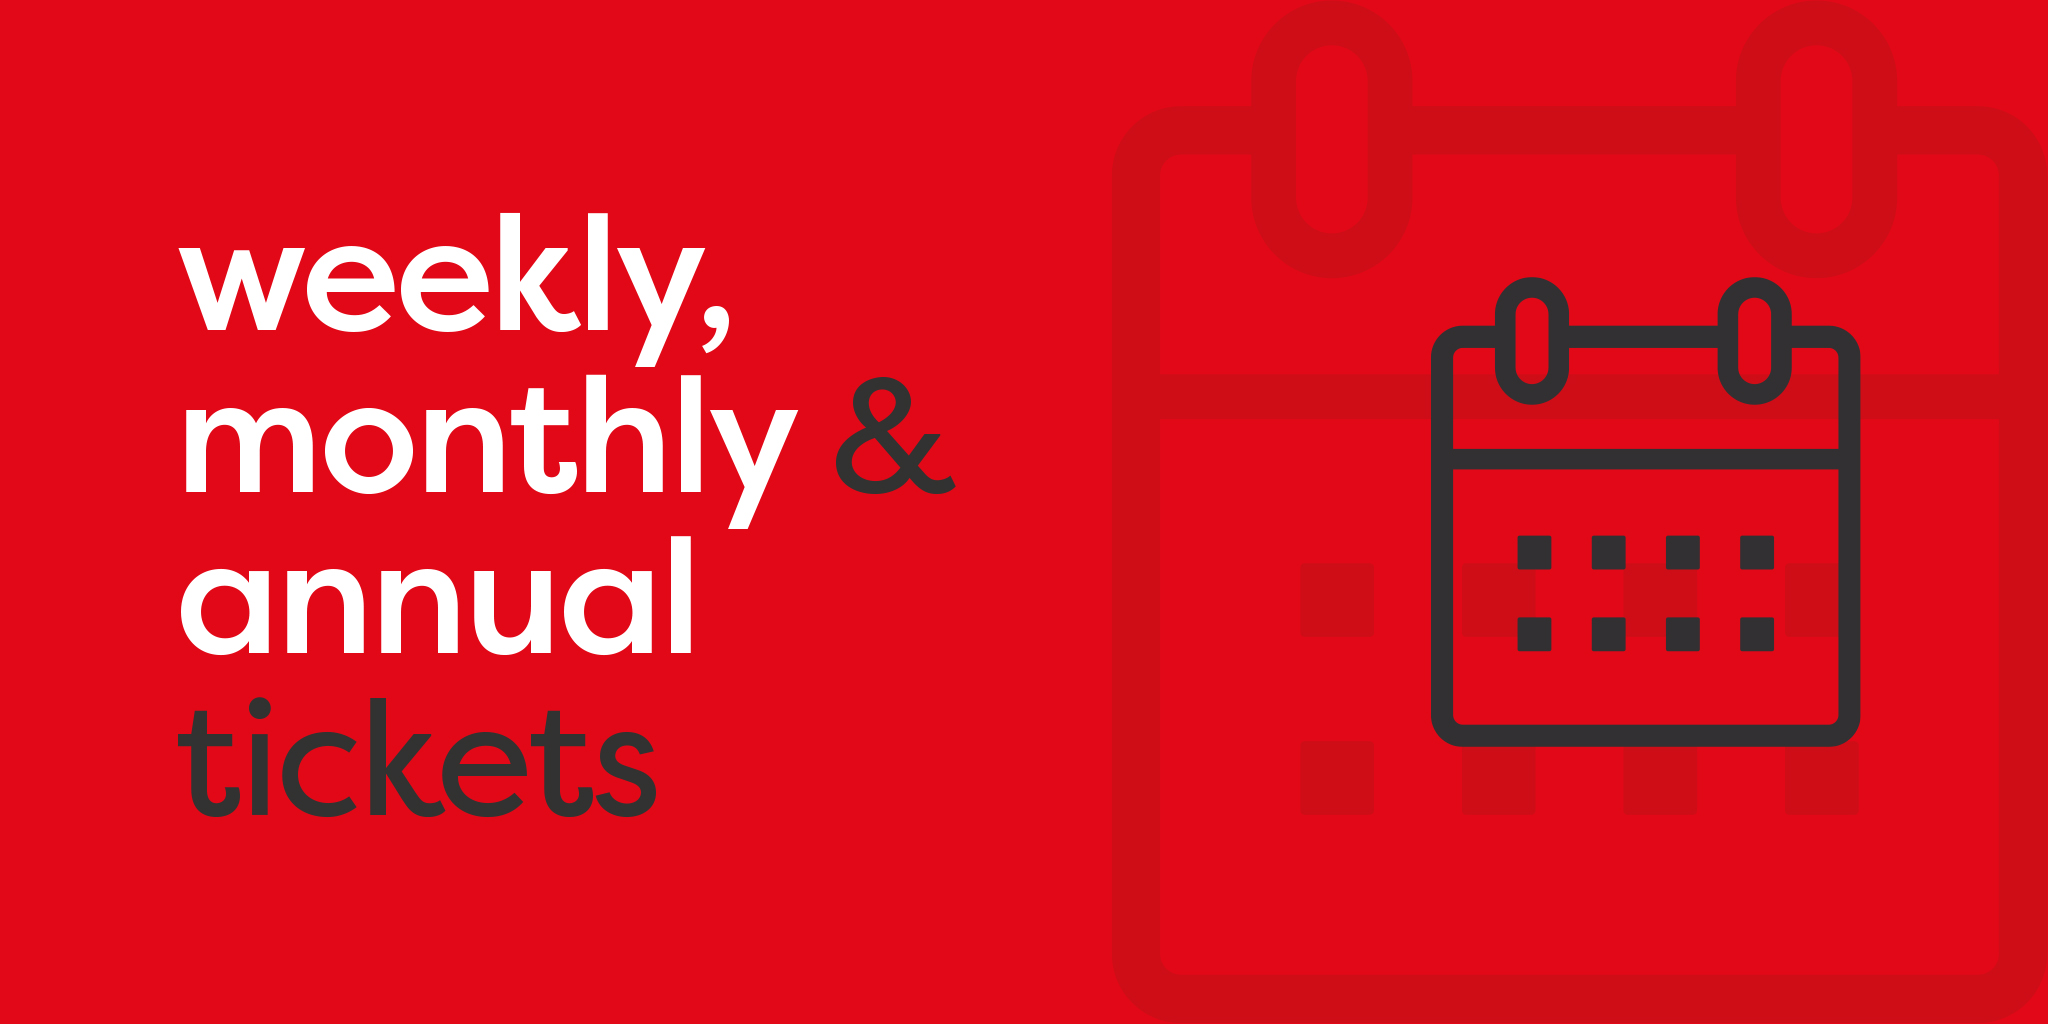 Image reading 'Weekly, monthly and annual tickets'